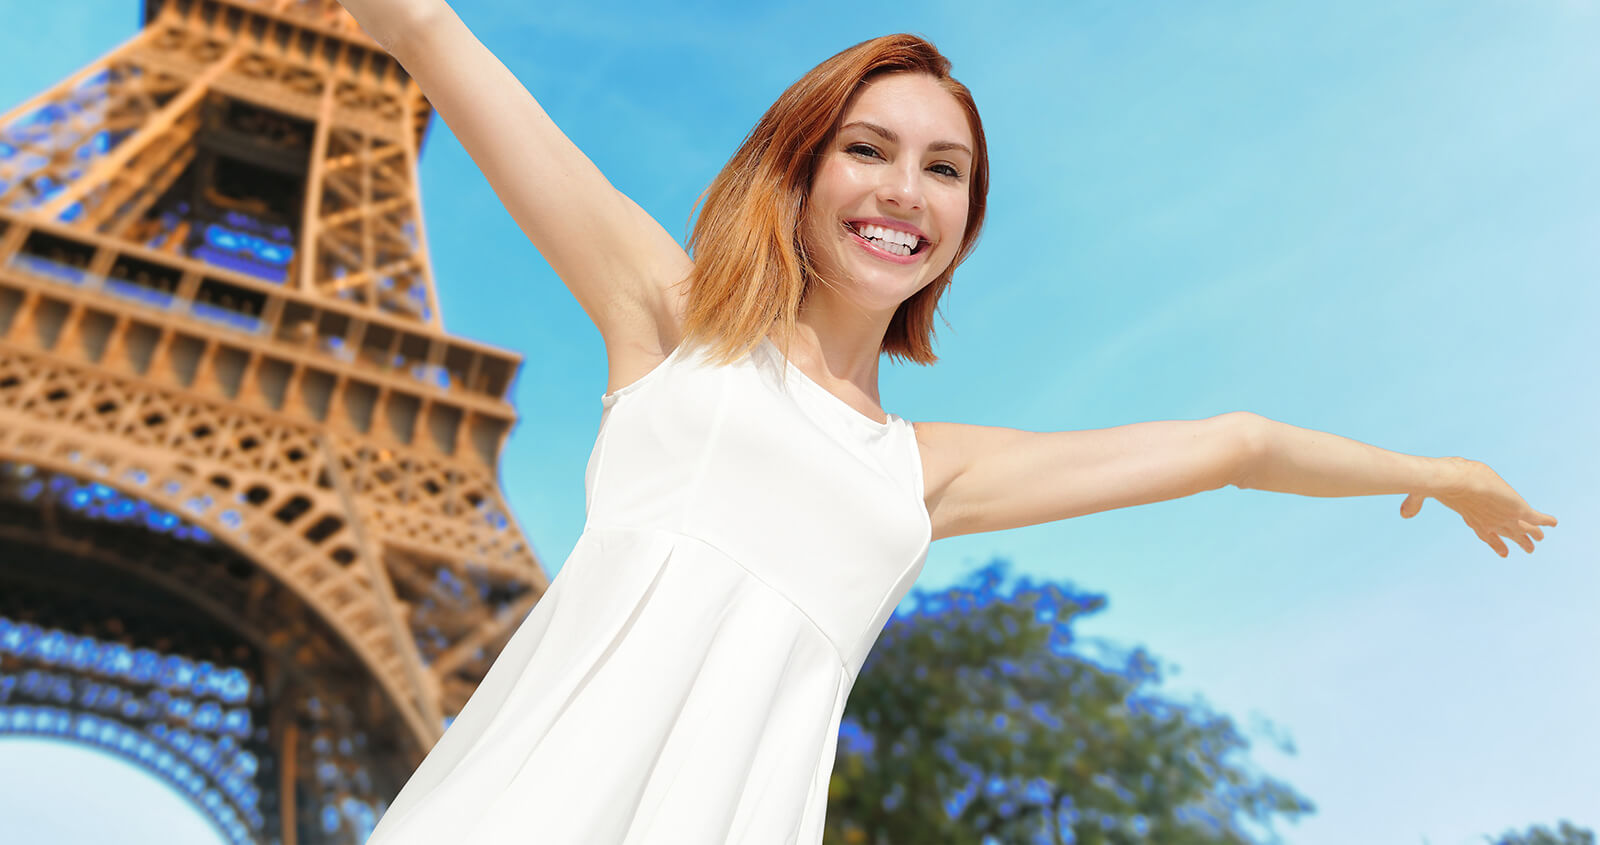 What to Expect for Wrinkle Removal With Botox in New York Area